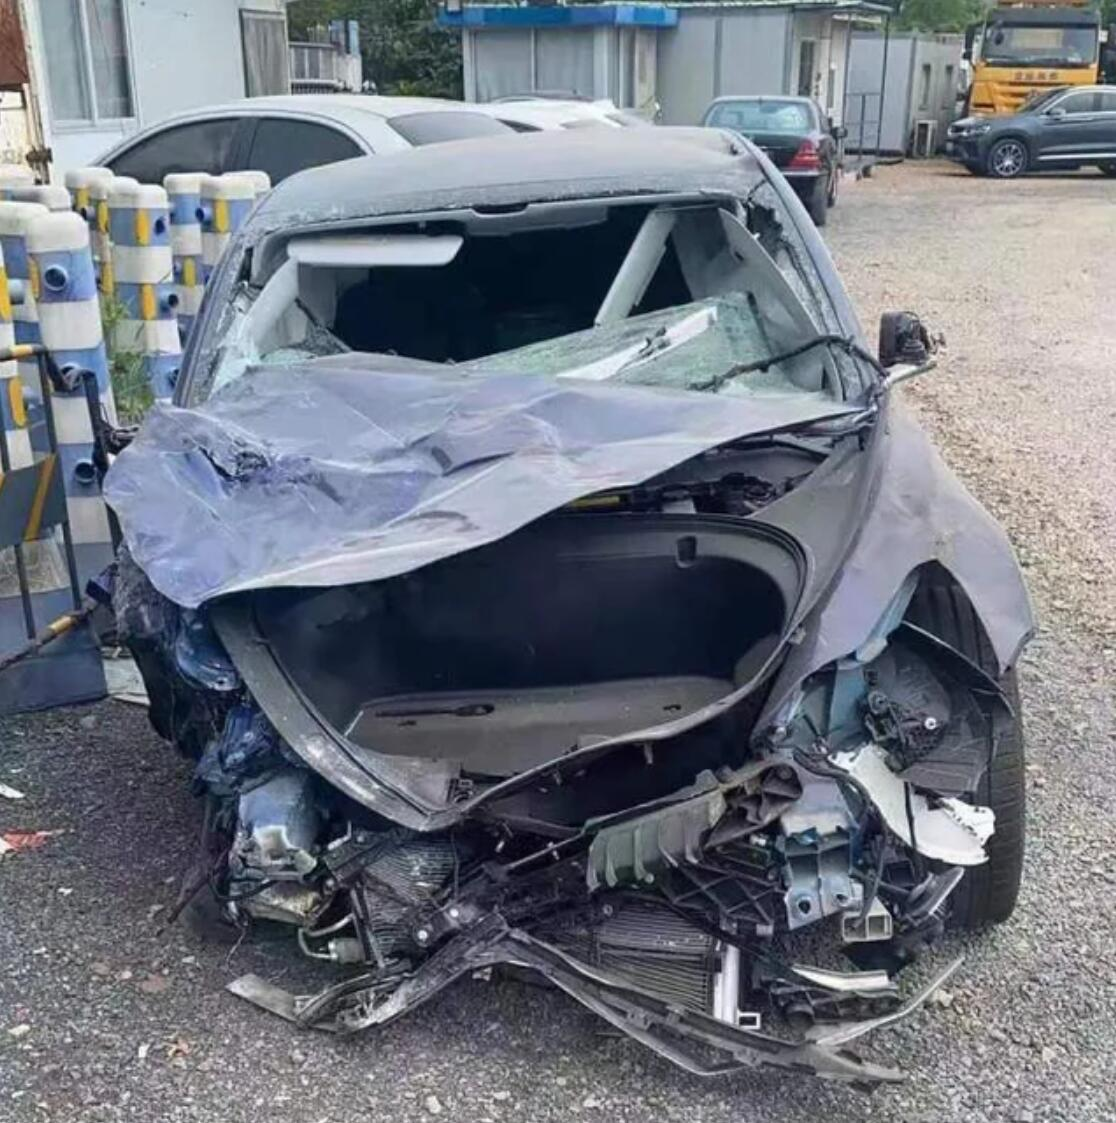 Investigation results say driver responsible for major accident involving Tesla last August-CnEVPost